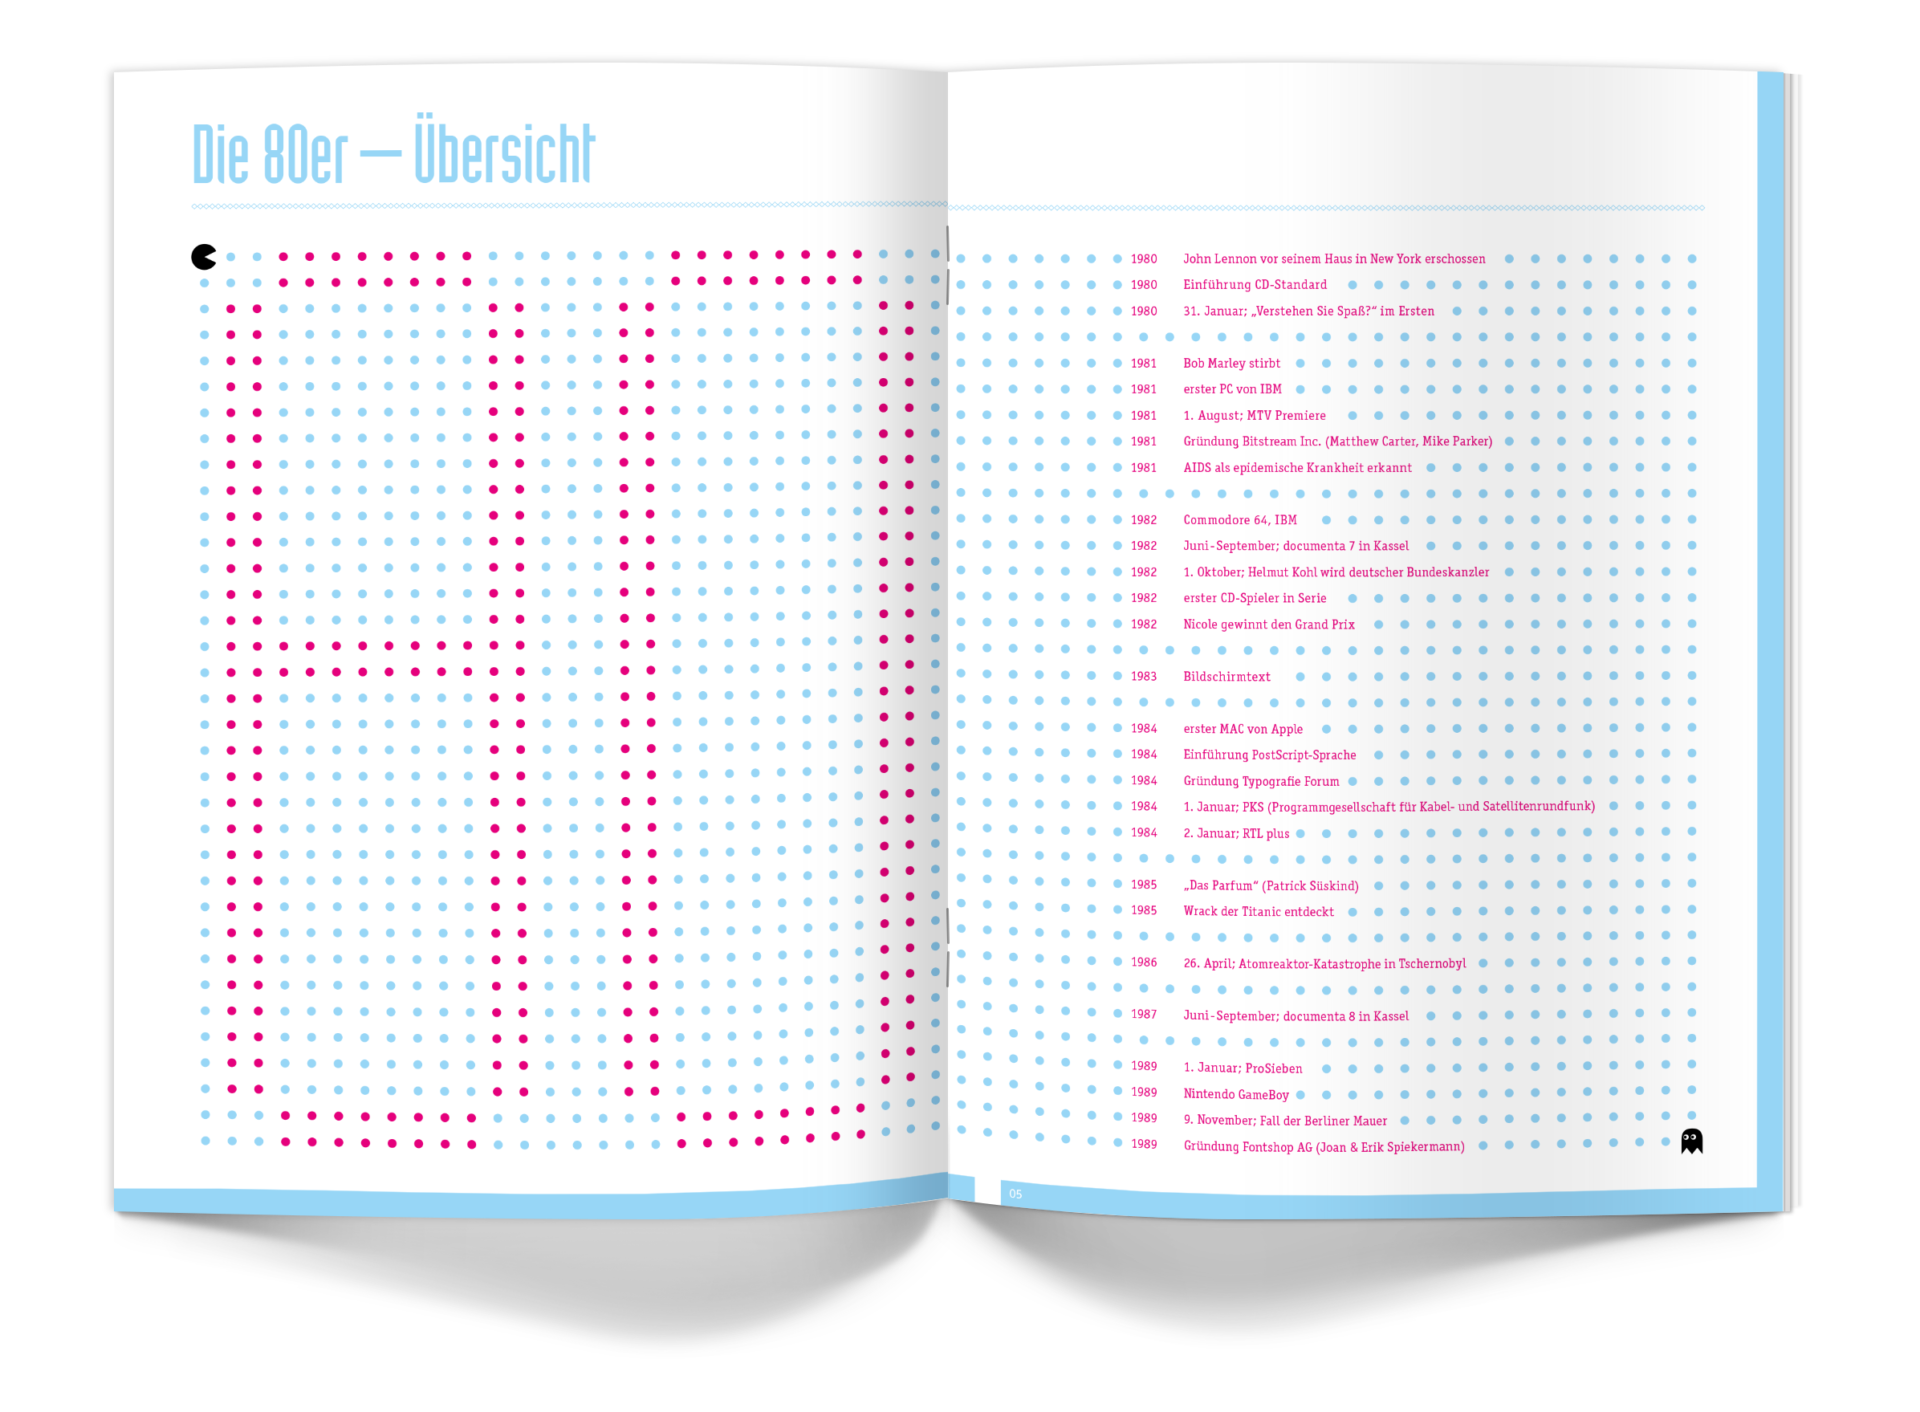 meandsarah – Grafikdesign Editorial: Typografie der 80er Jahre